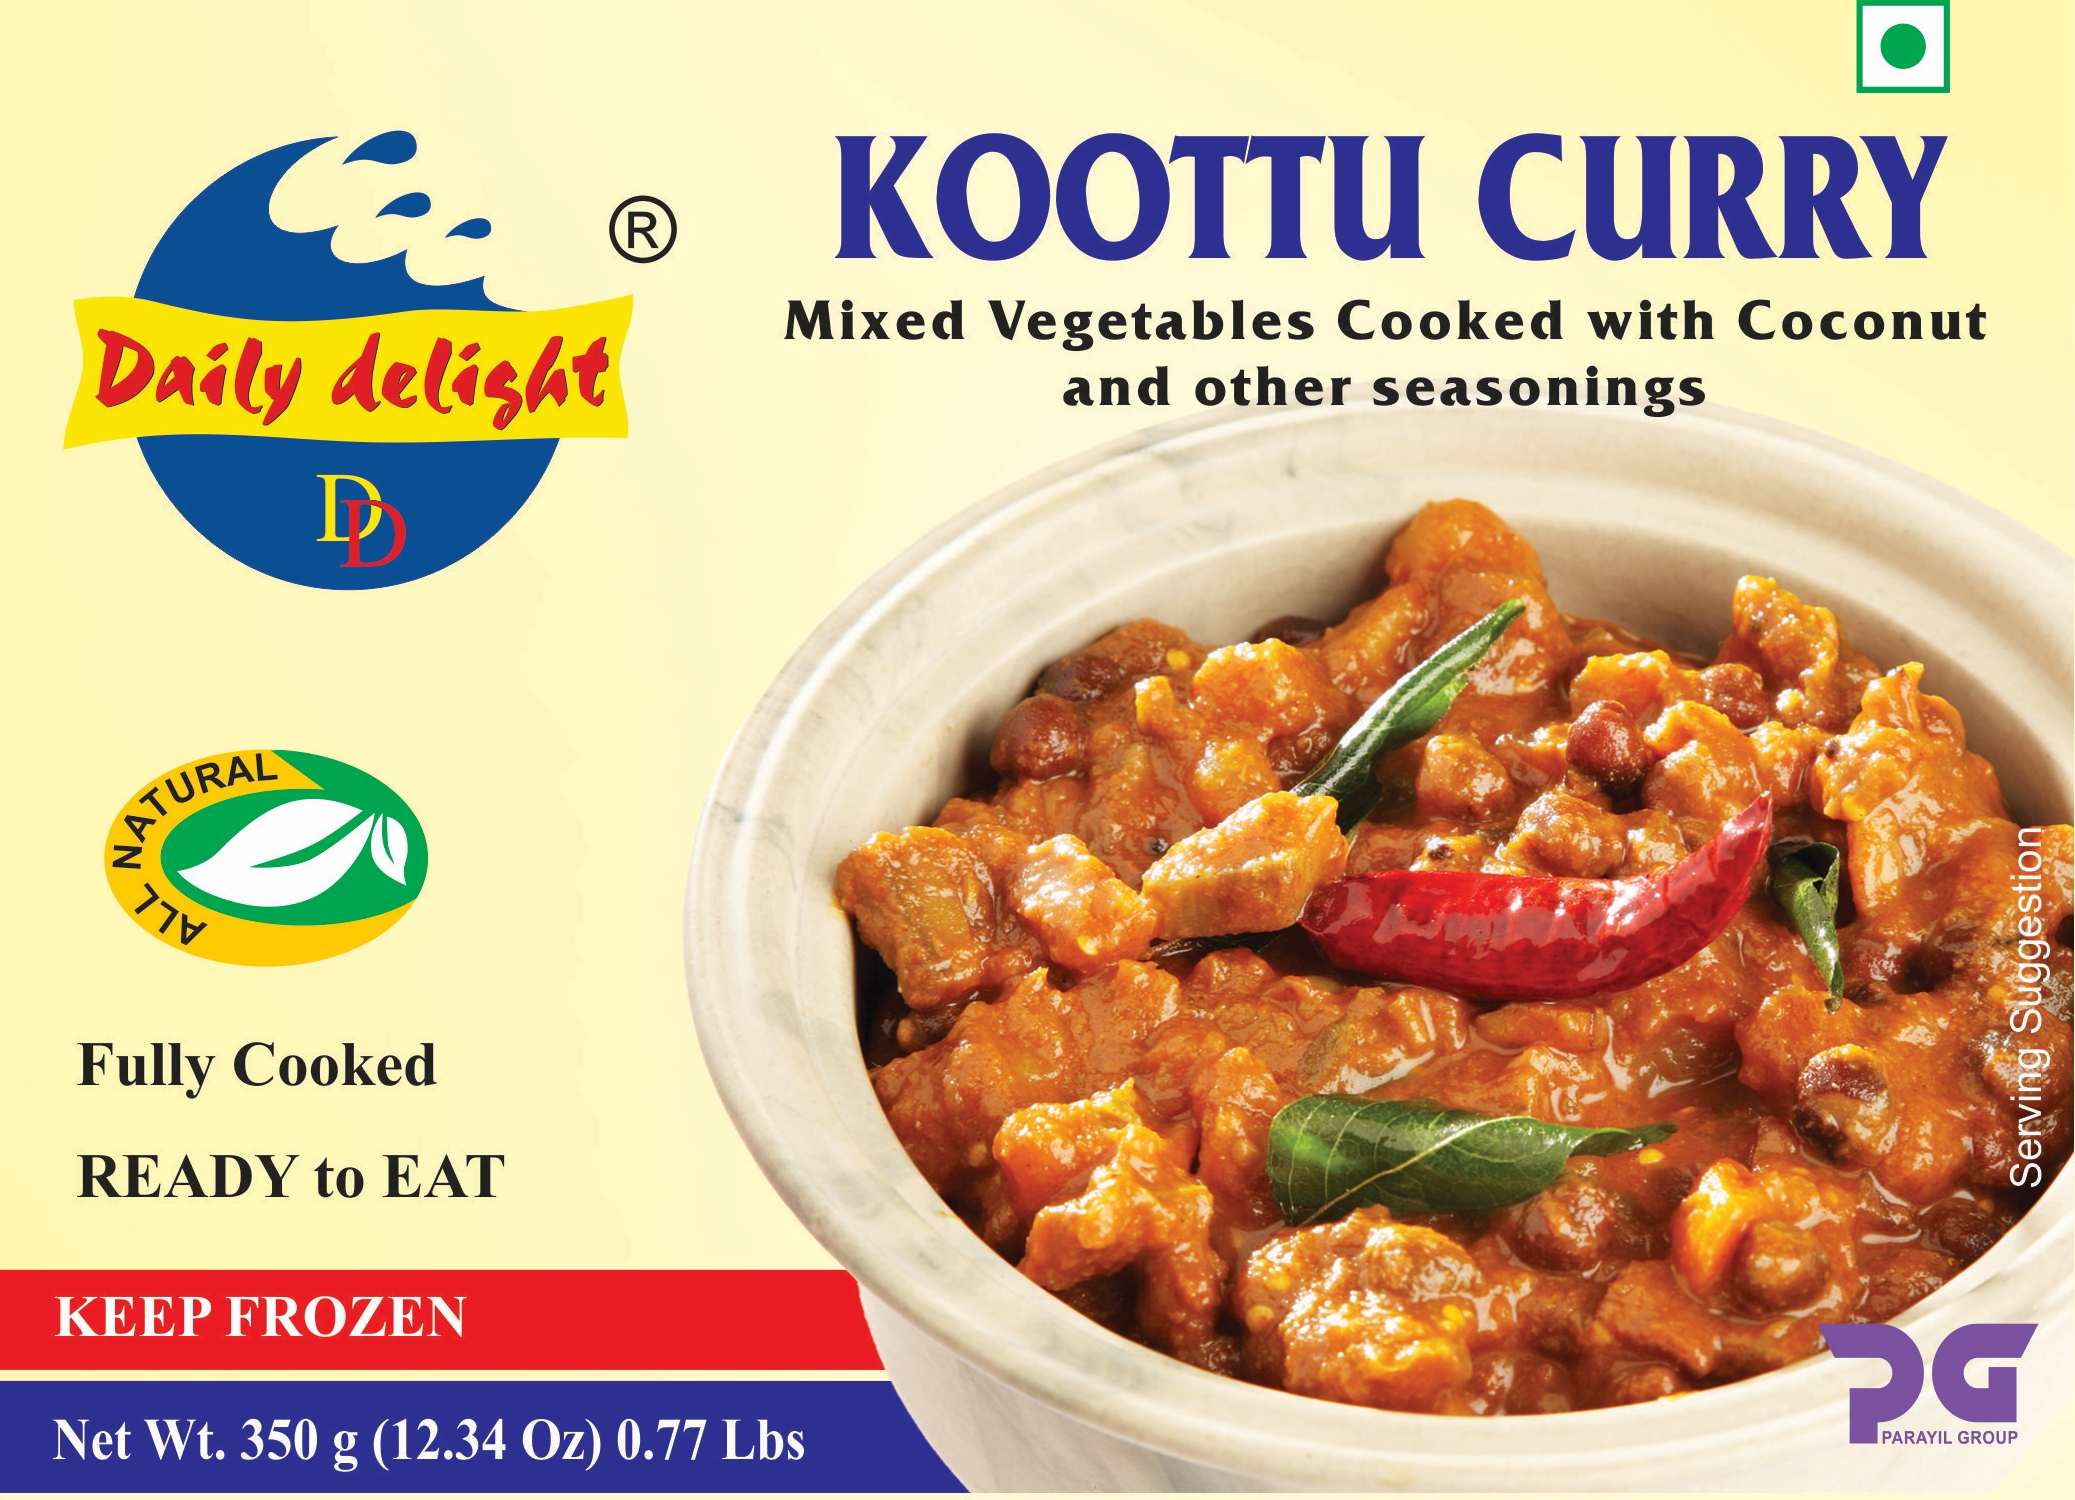 Daily Delight Koottu Curry